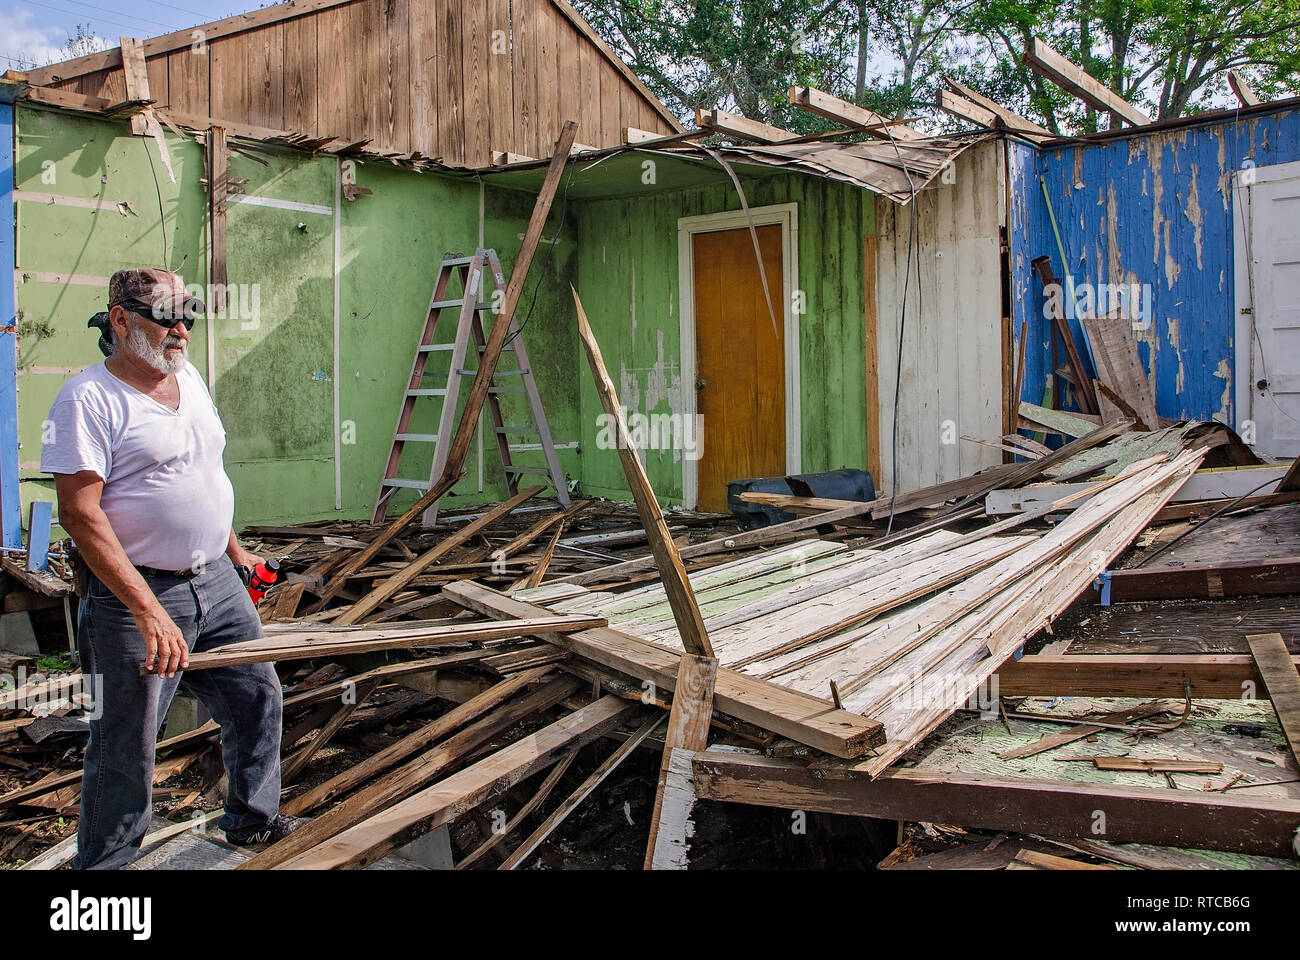 Joe Guerra talks to a neighbor as he clears rubble from his storm-damaged home after Hurricane Harvey, Oct. 4, 2017, in Refugio, Texas. - Stock Image